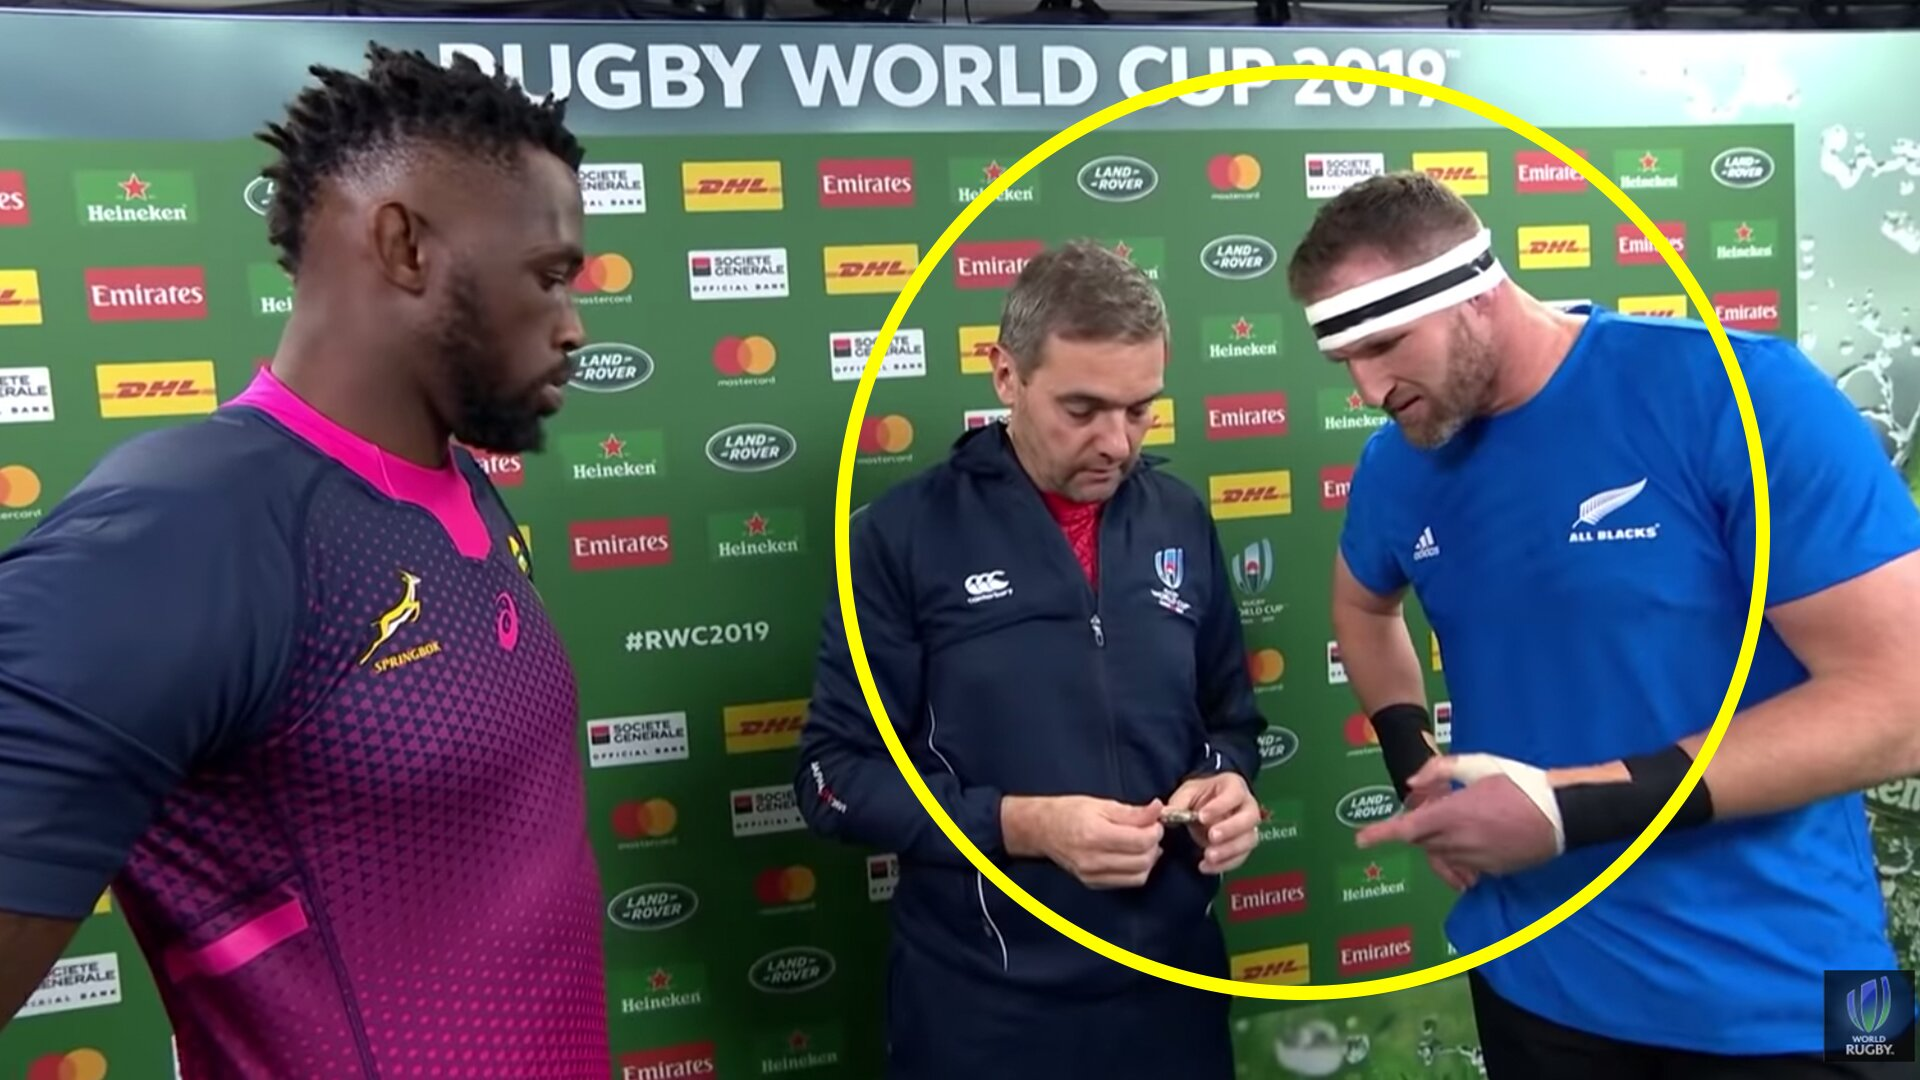 Unseen footages proves Rugby World Cup officials were in on helping the Springboks win - Rugby OnSlaught